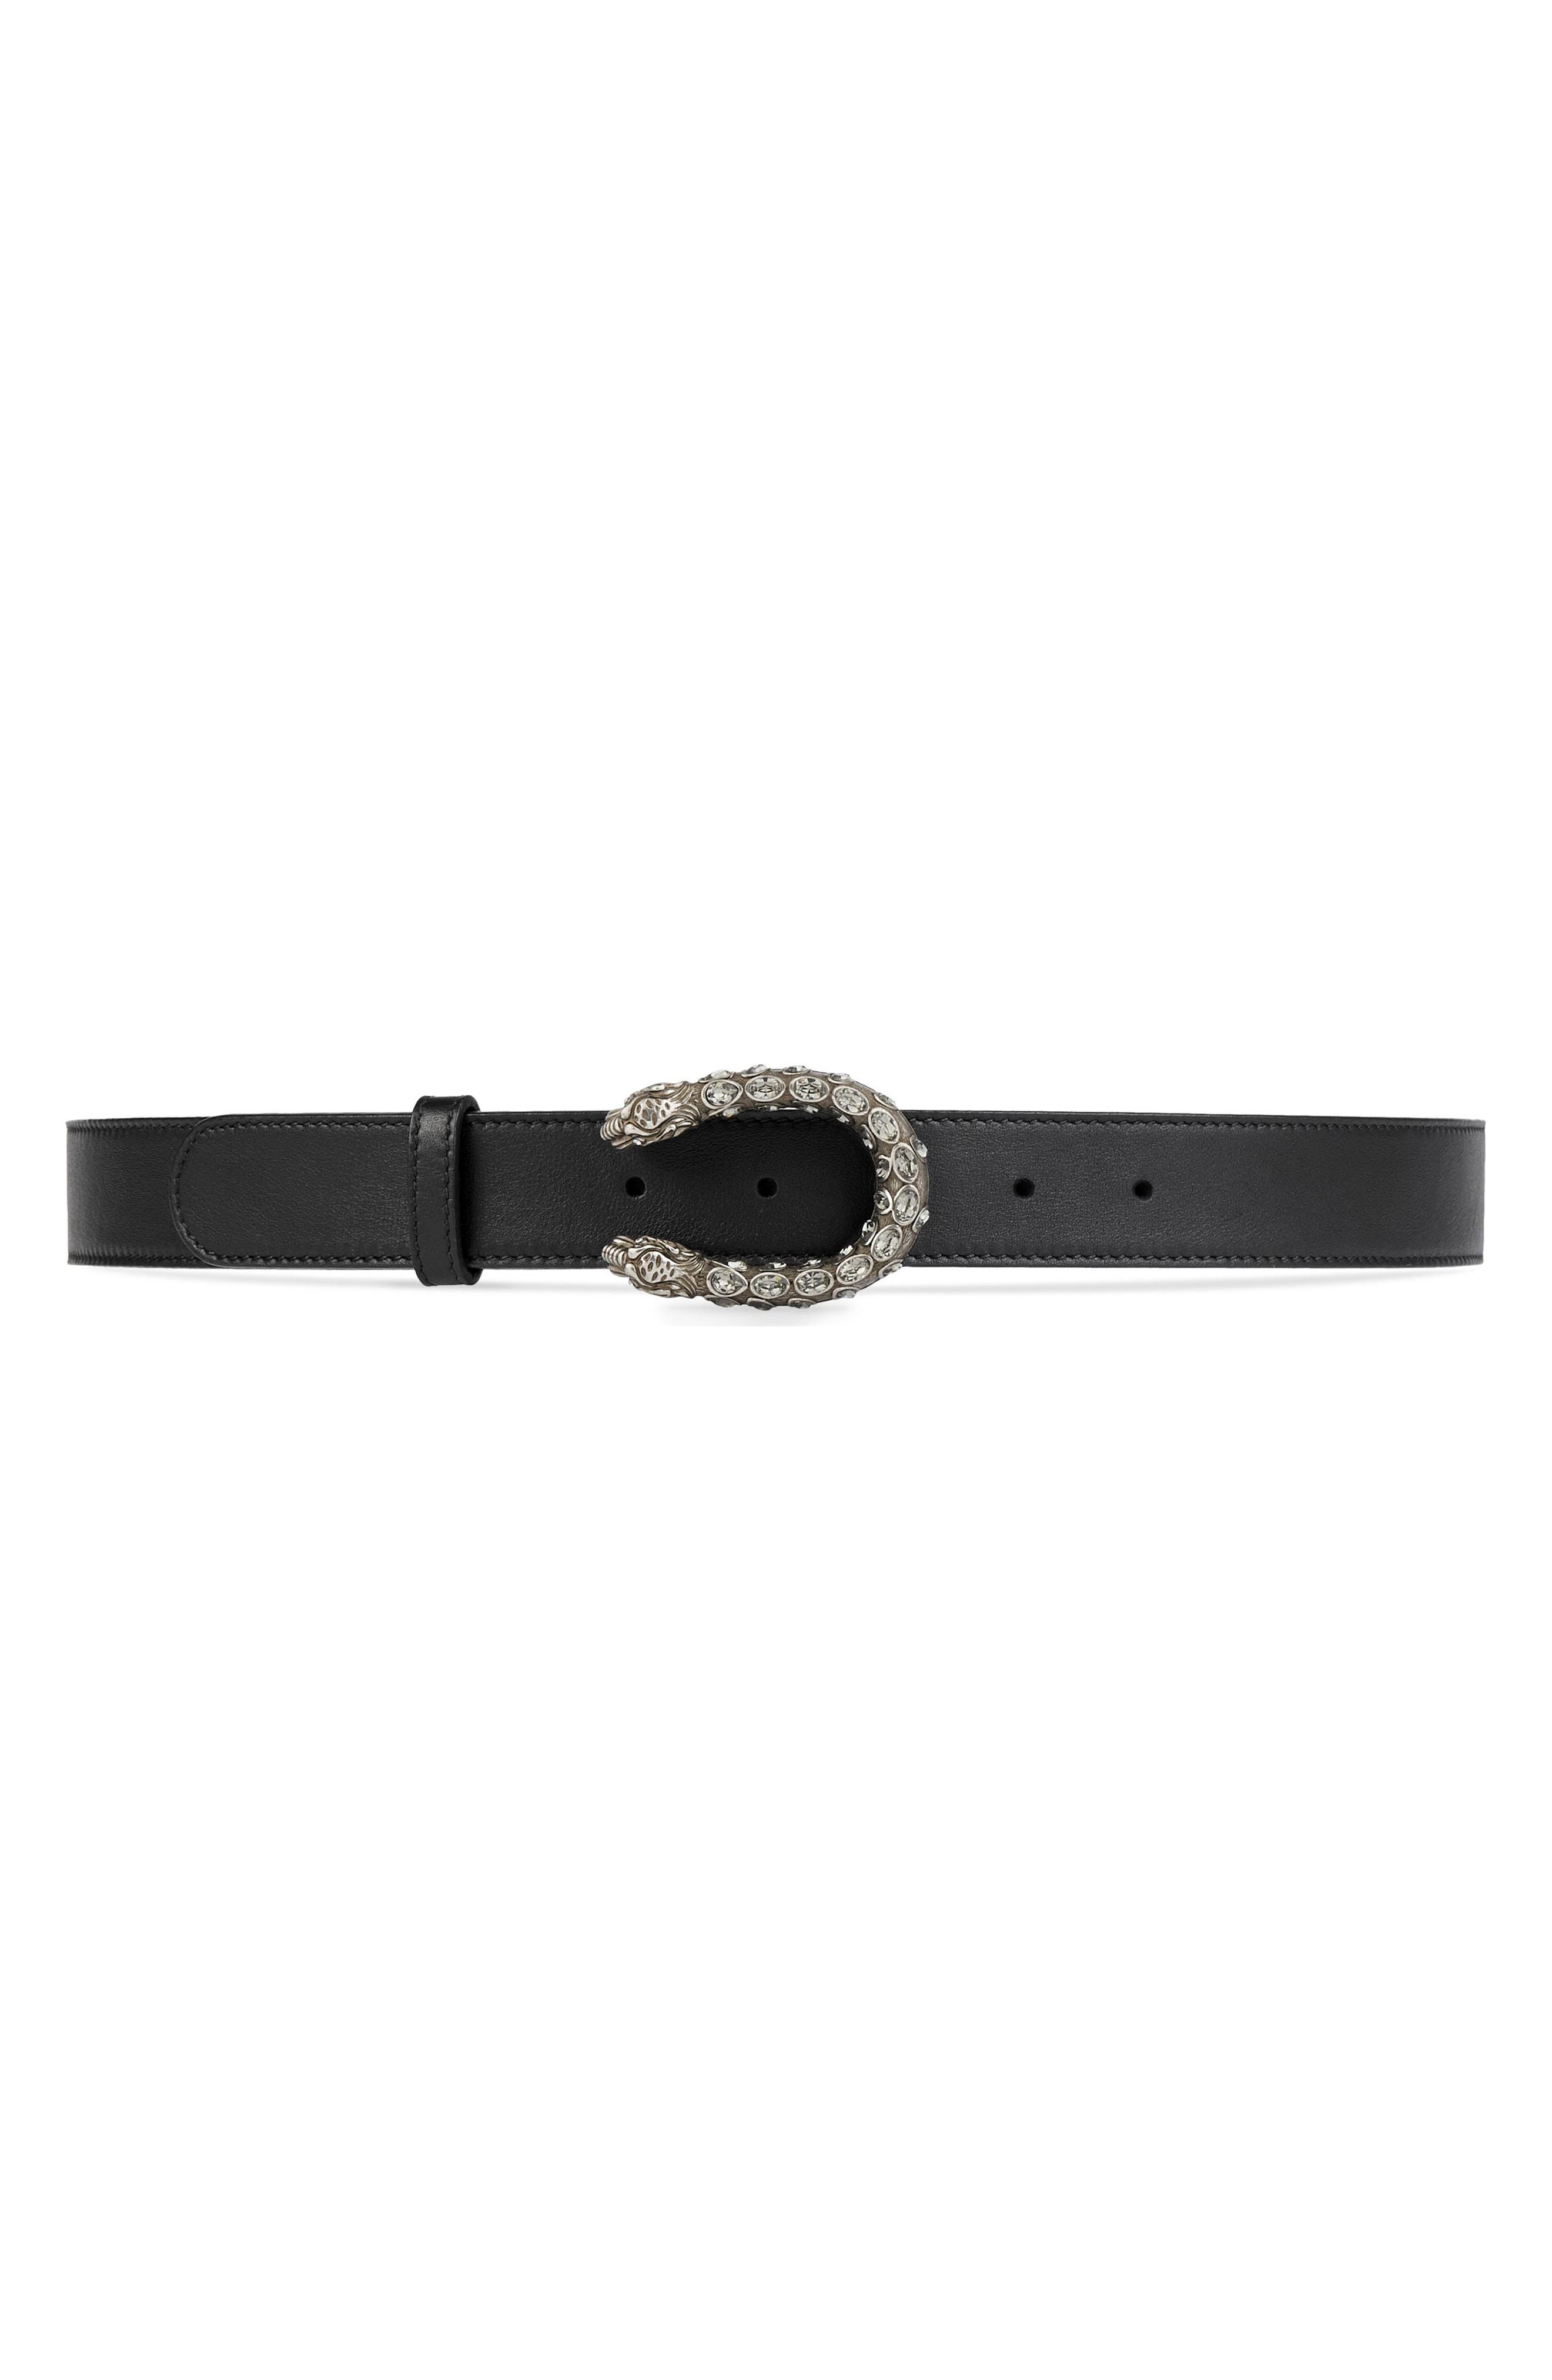 Main Image - Gucci Leather Belt